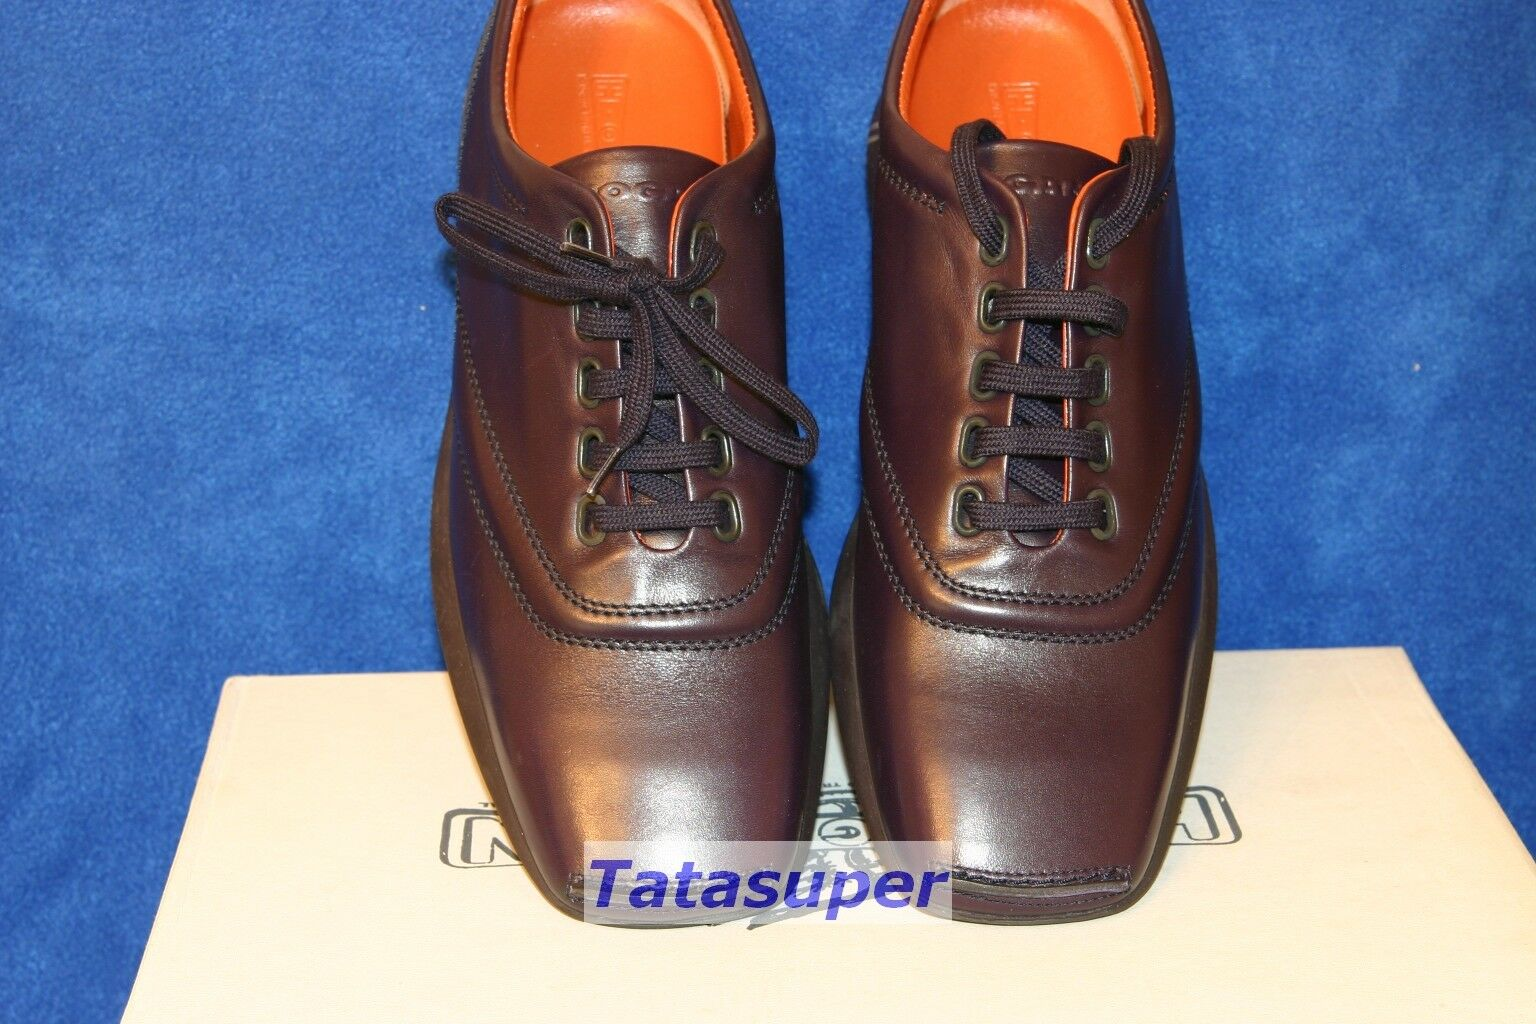 100% Authentic Authentic Authentic Hogan scarpe da ginnastica scarpe Dimensione 38 - viola dcb1cc